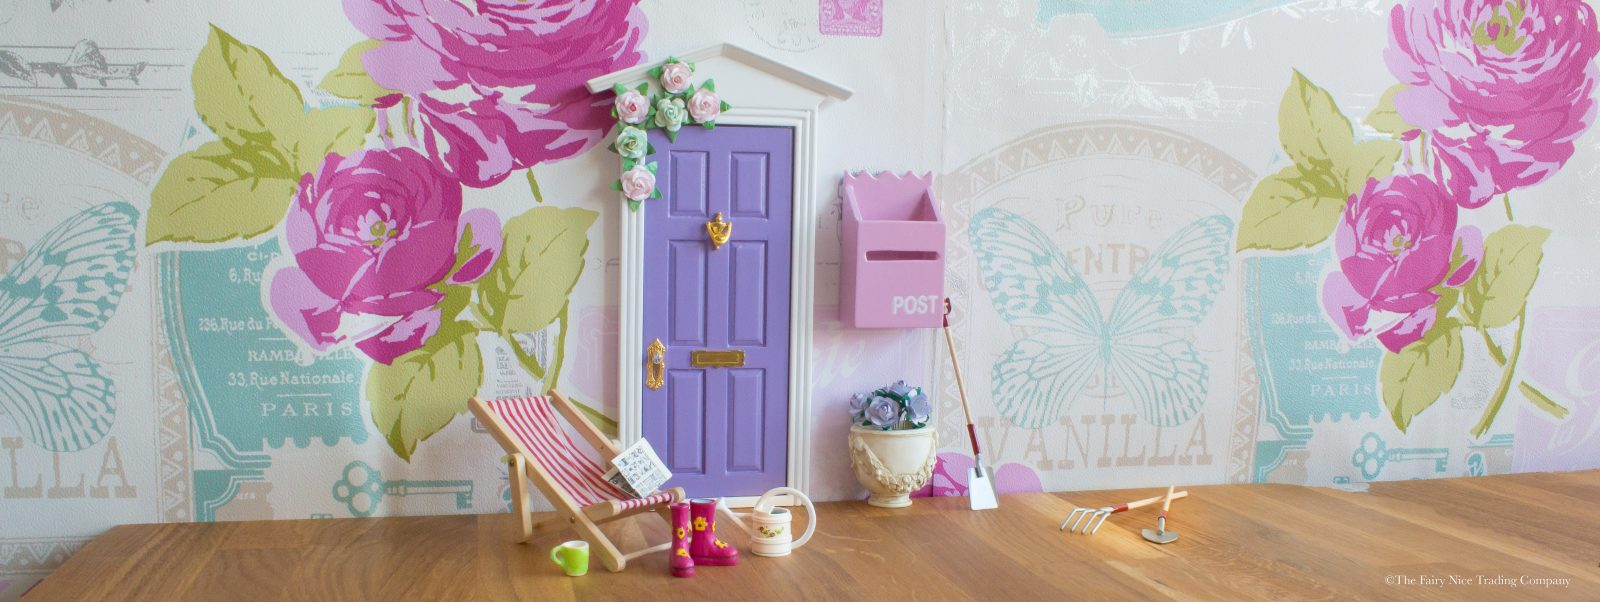 New purple Fairy Door UK